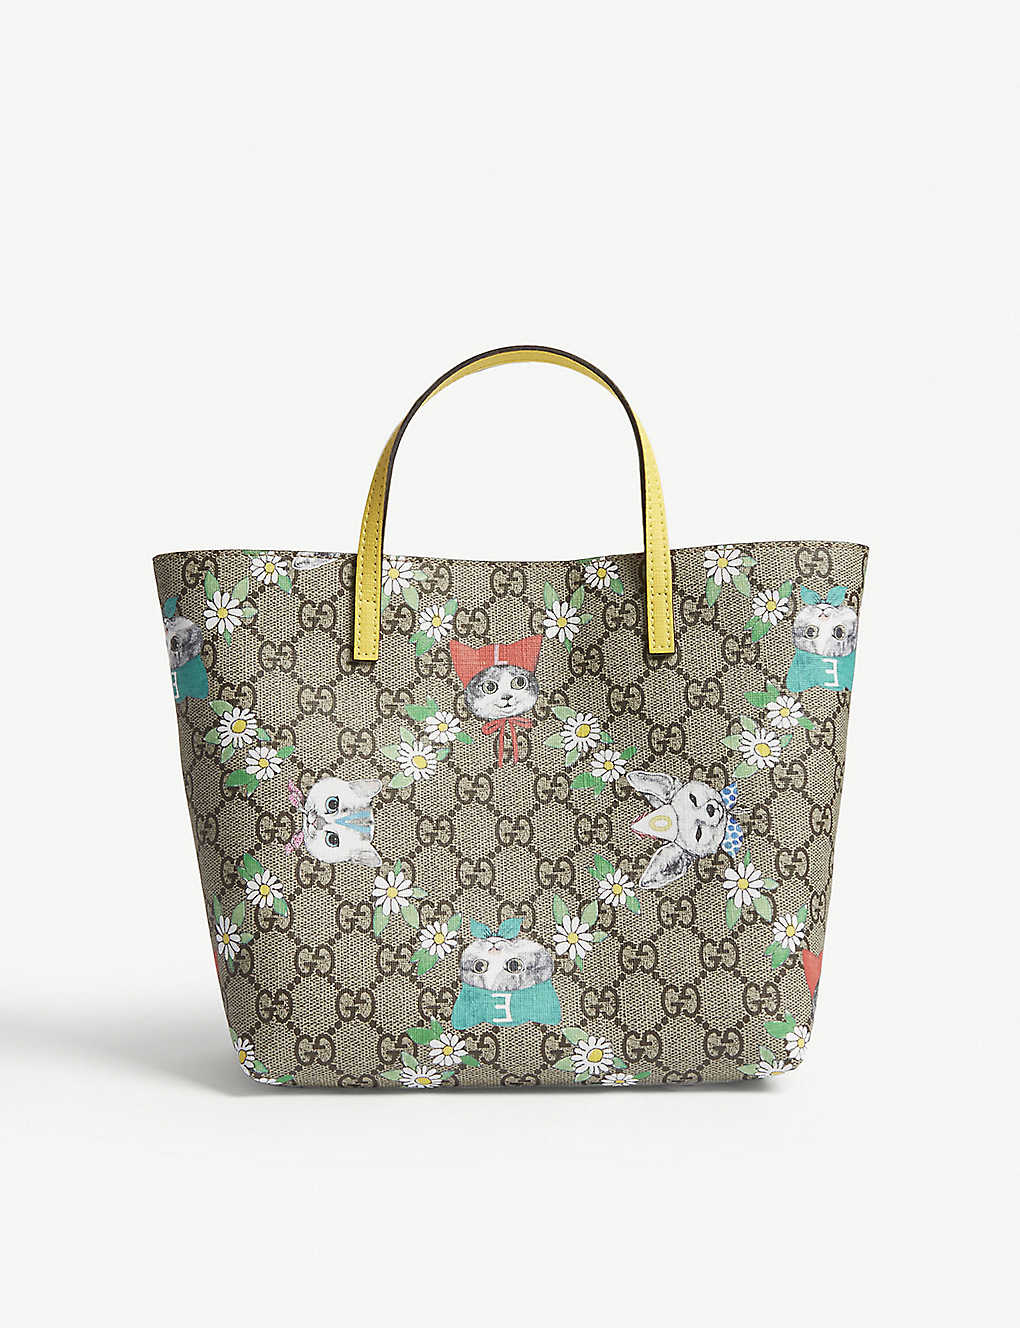 b9195f04318 GUCCI - GG Supreme cat print tote bag